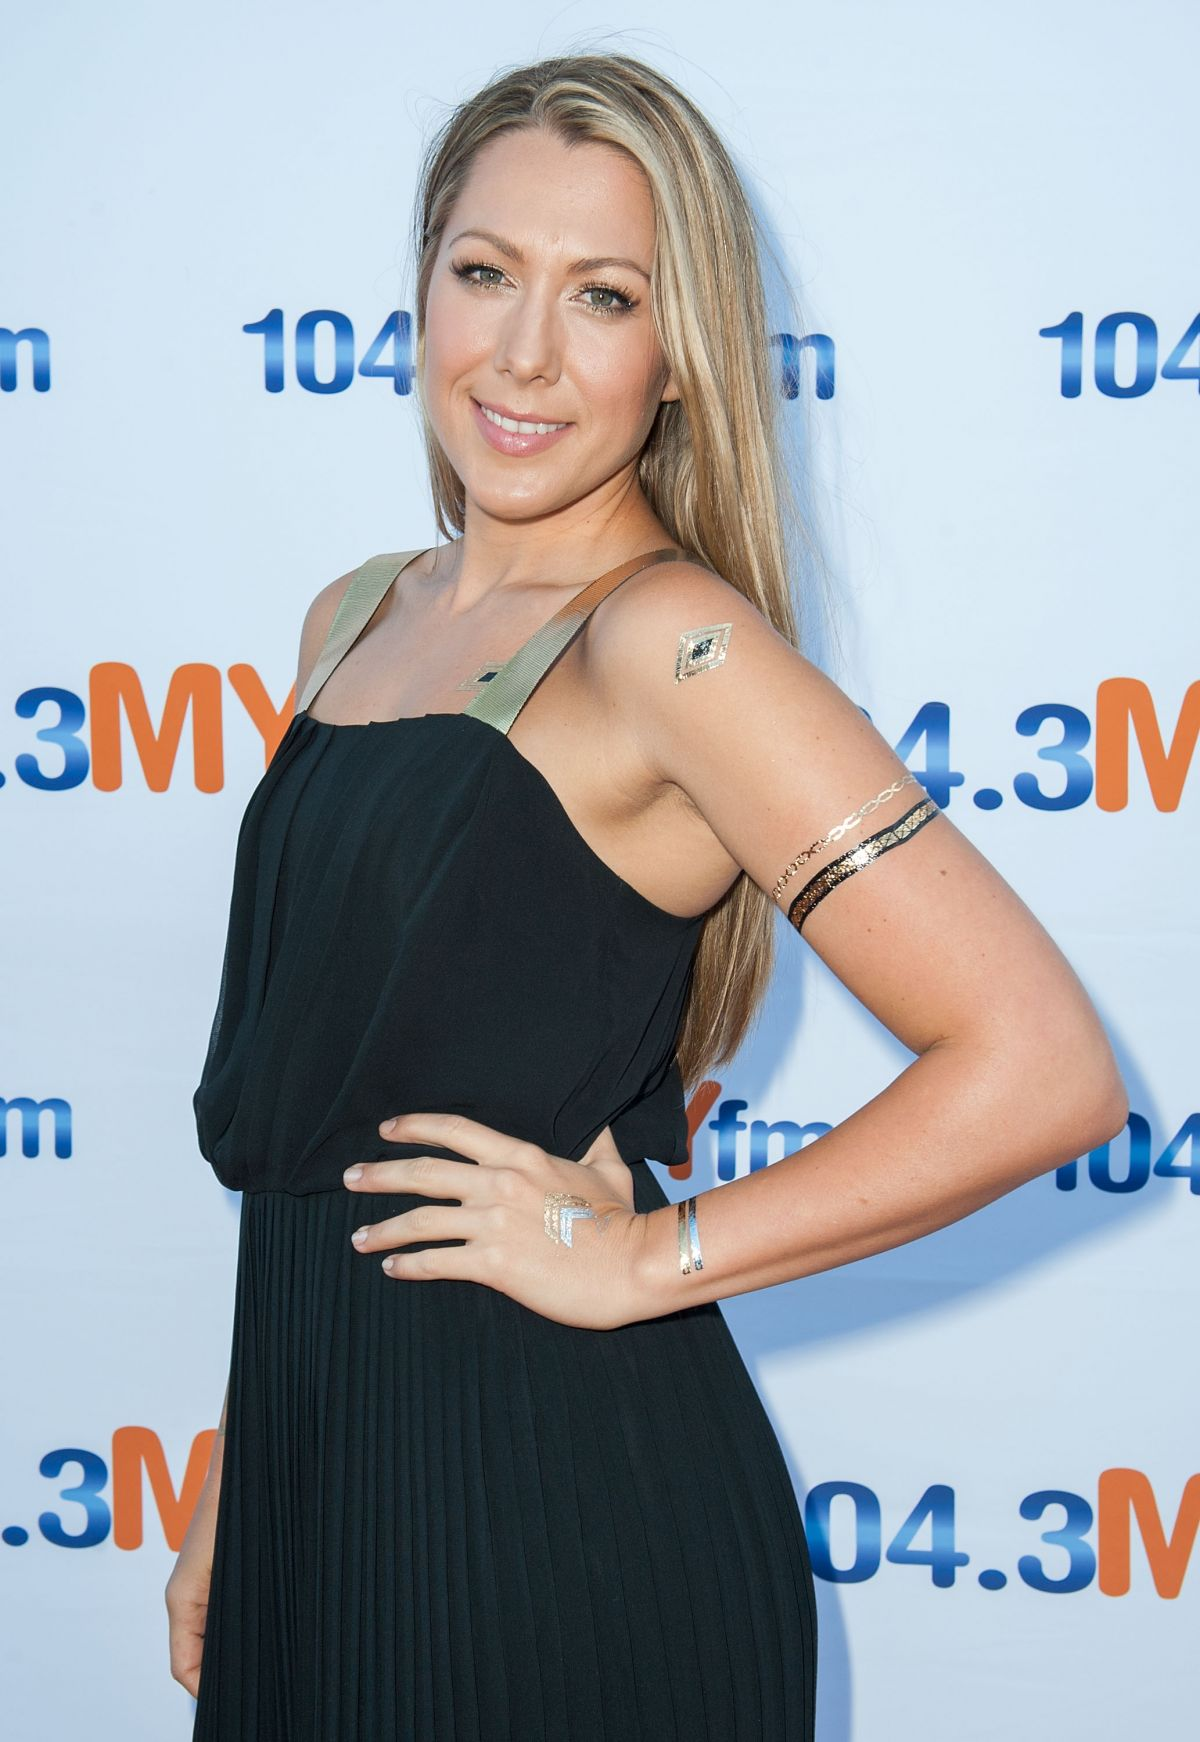 COLBIE CAILLAT at 104.3 MY FM Presents My Big Night Out in Hollywood